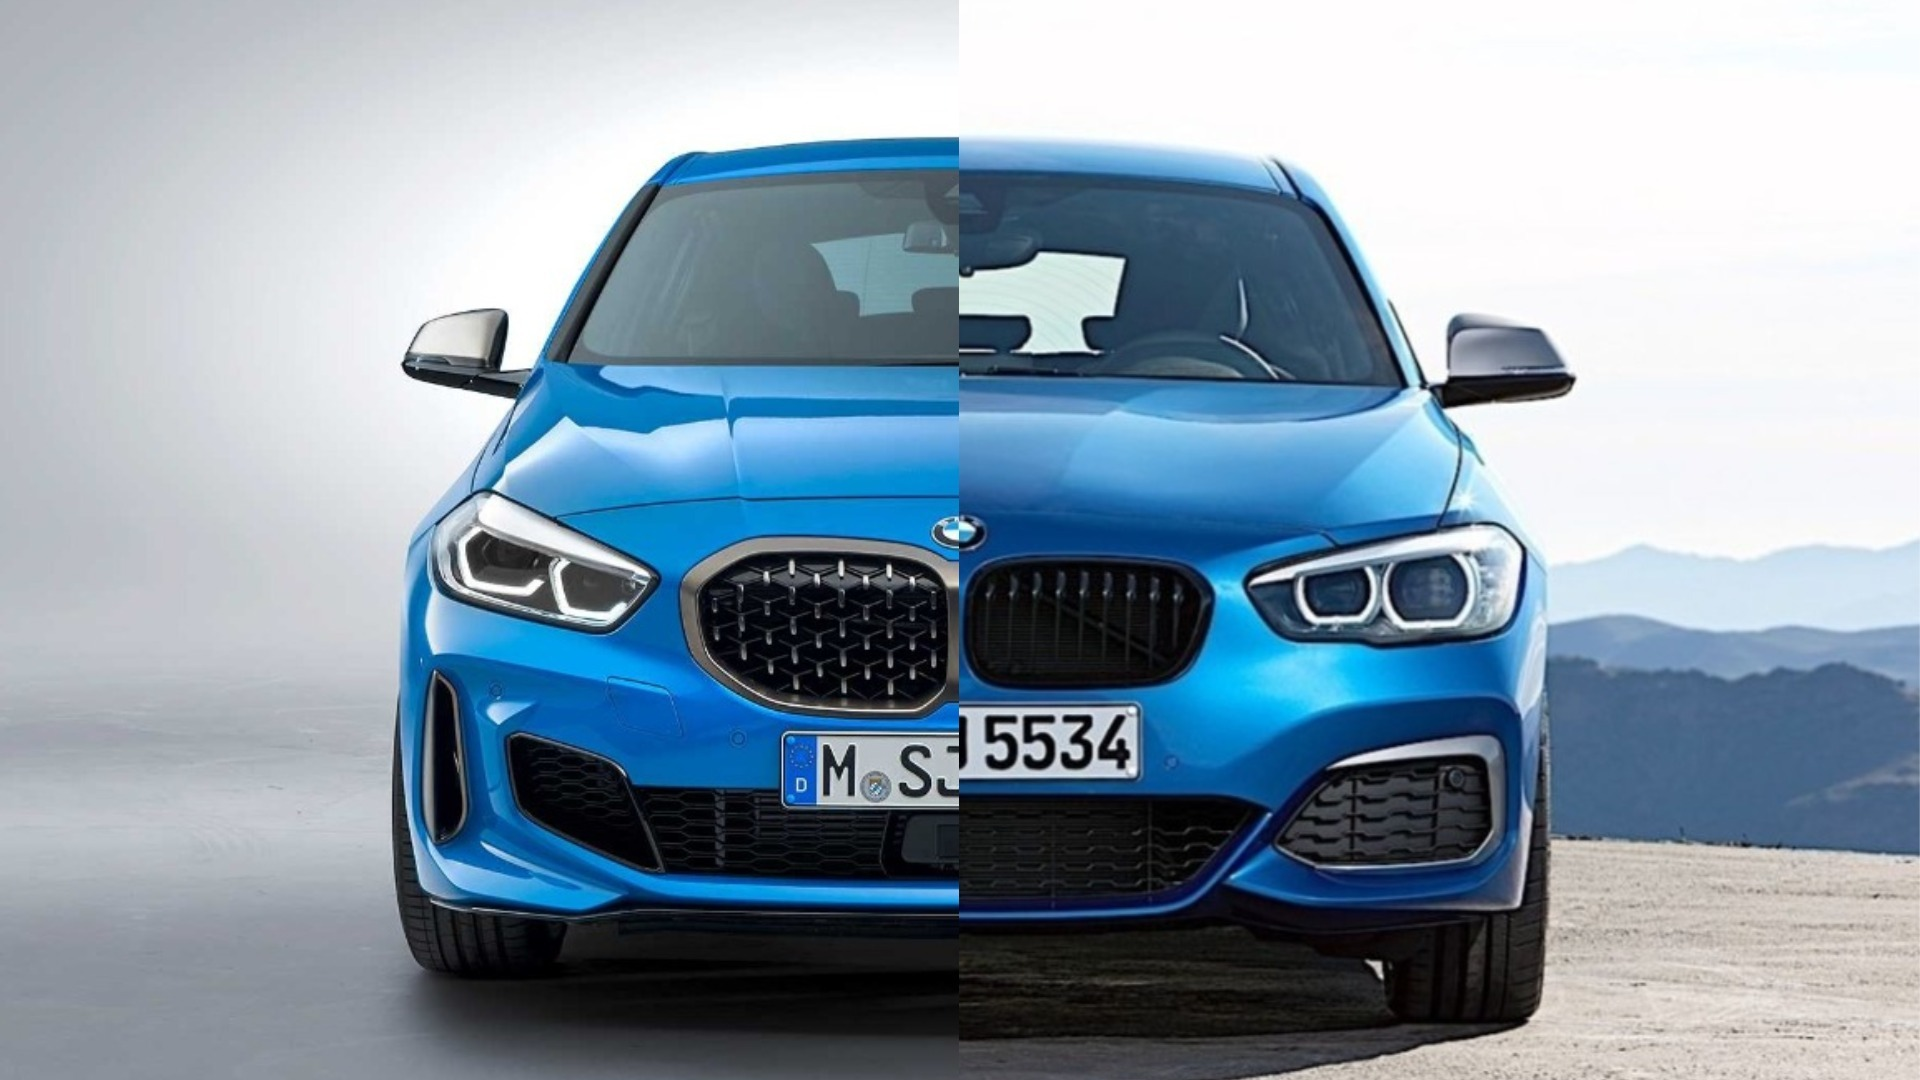 Bmw 1 Series >> Photo Comparison 2020 Bmw 1 Series Vs 2017 Bmw 1 Series